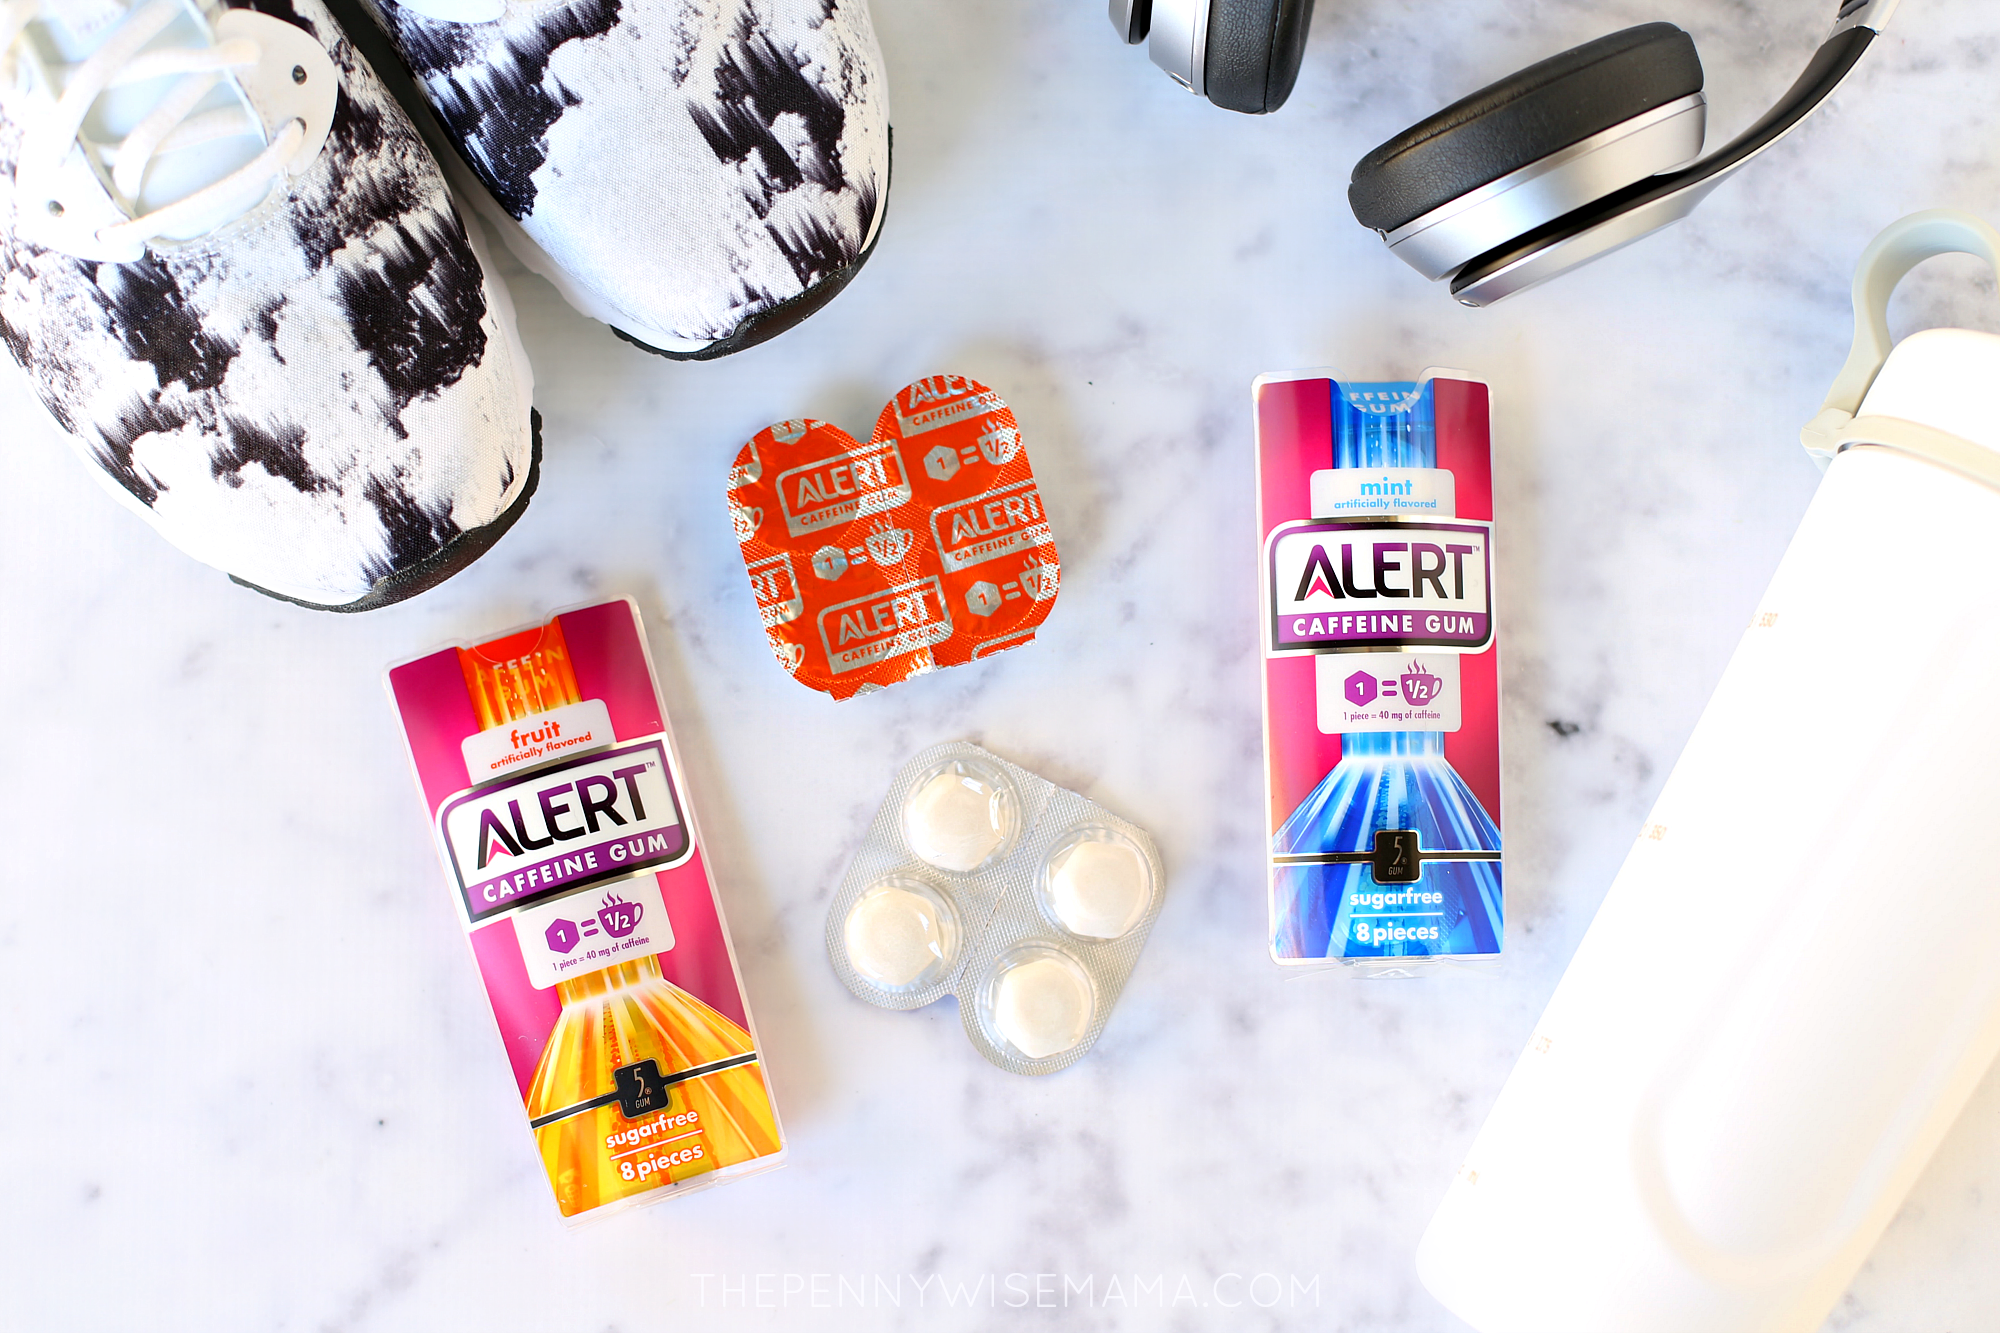 Stick to Your Fitness Goals with Alert Caffeine Gum